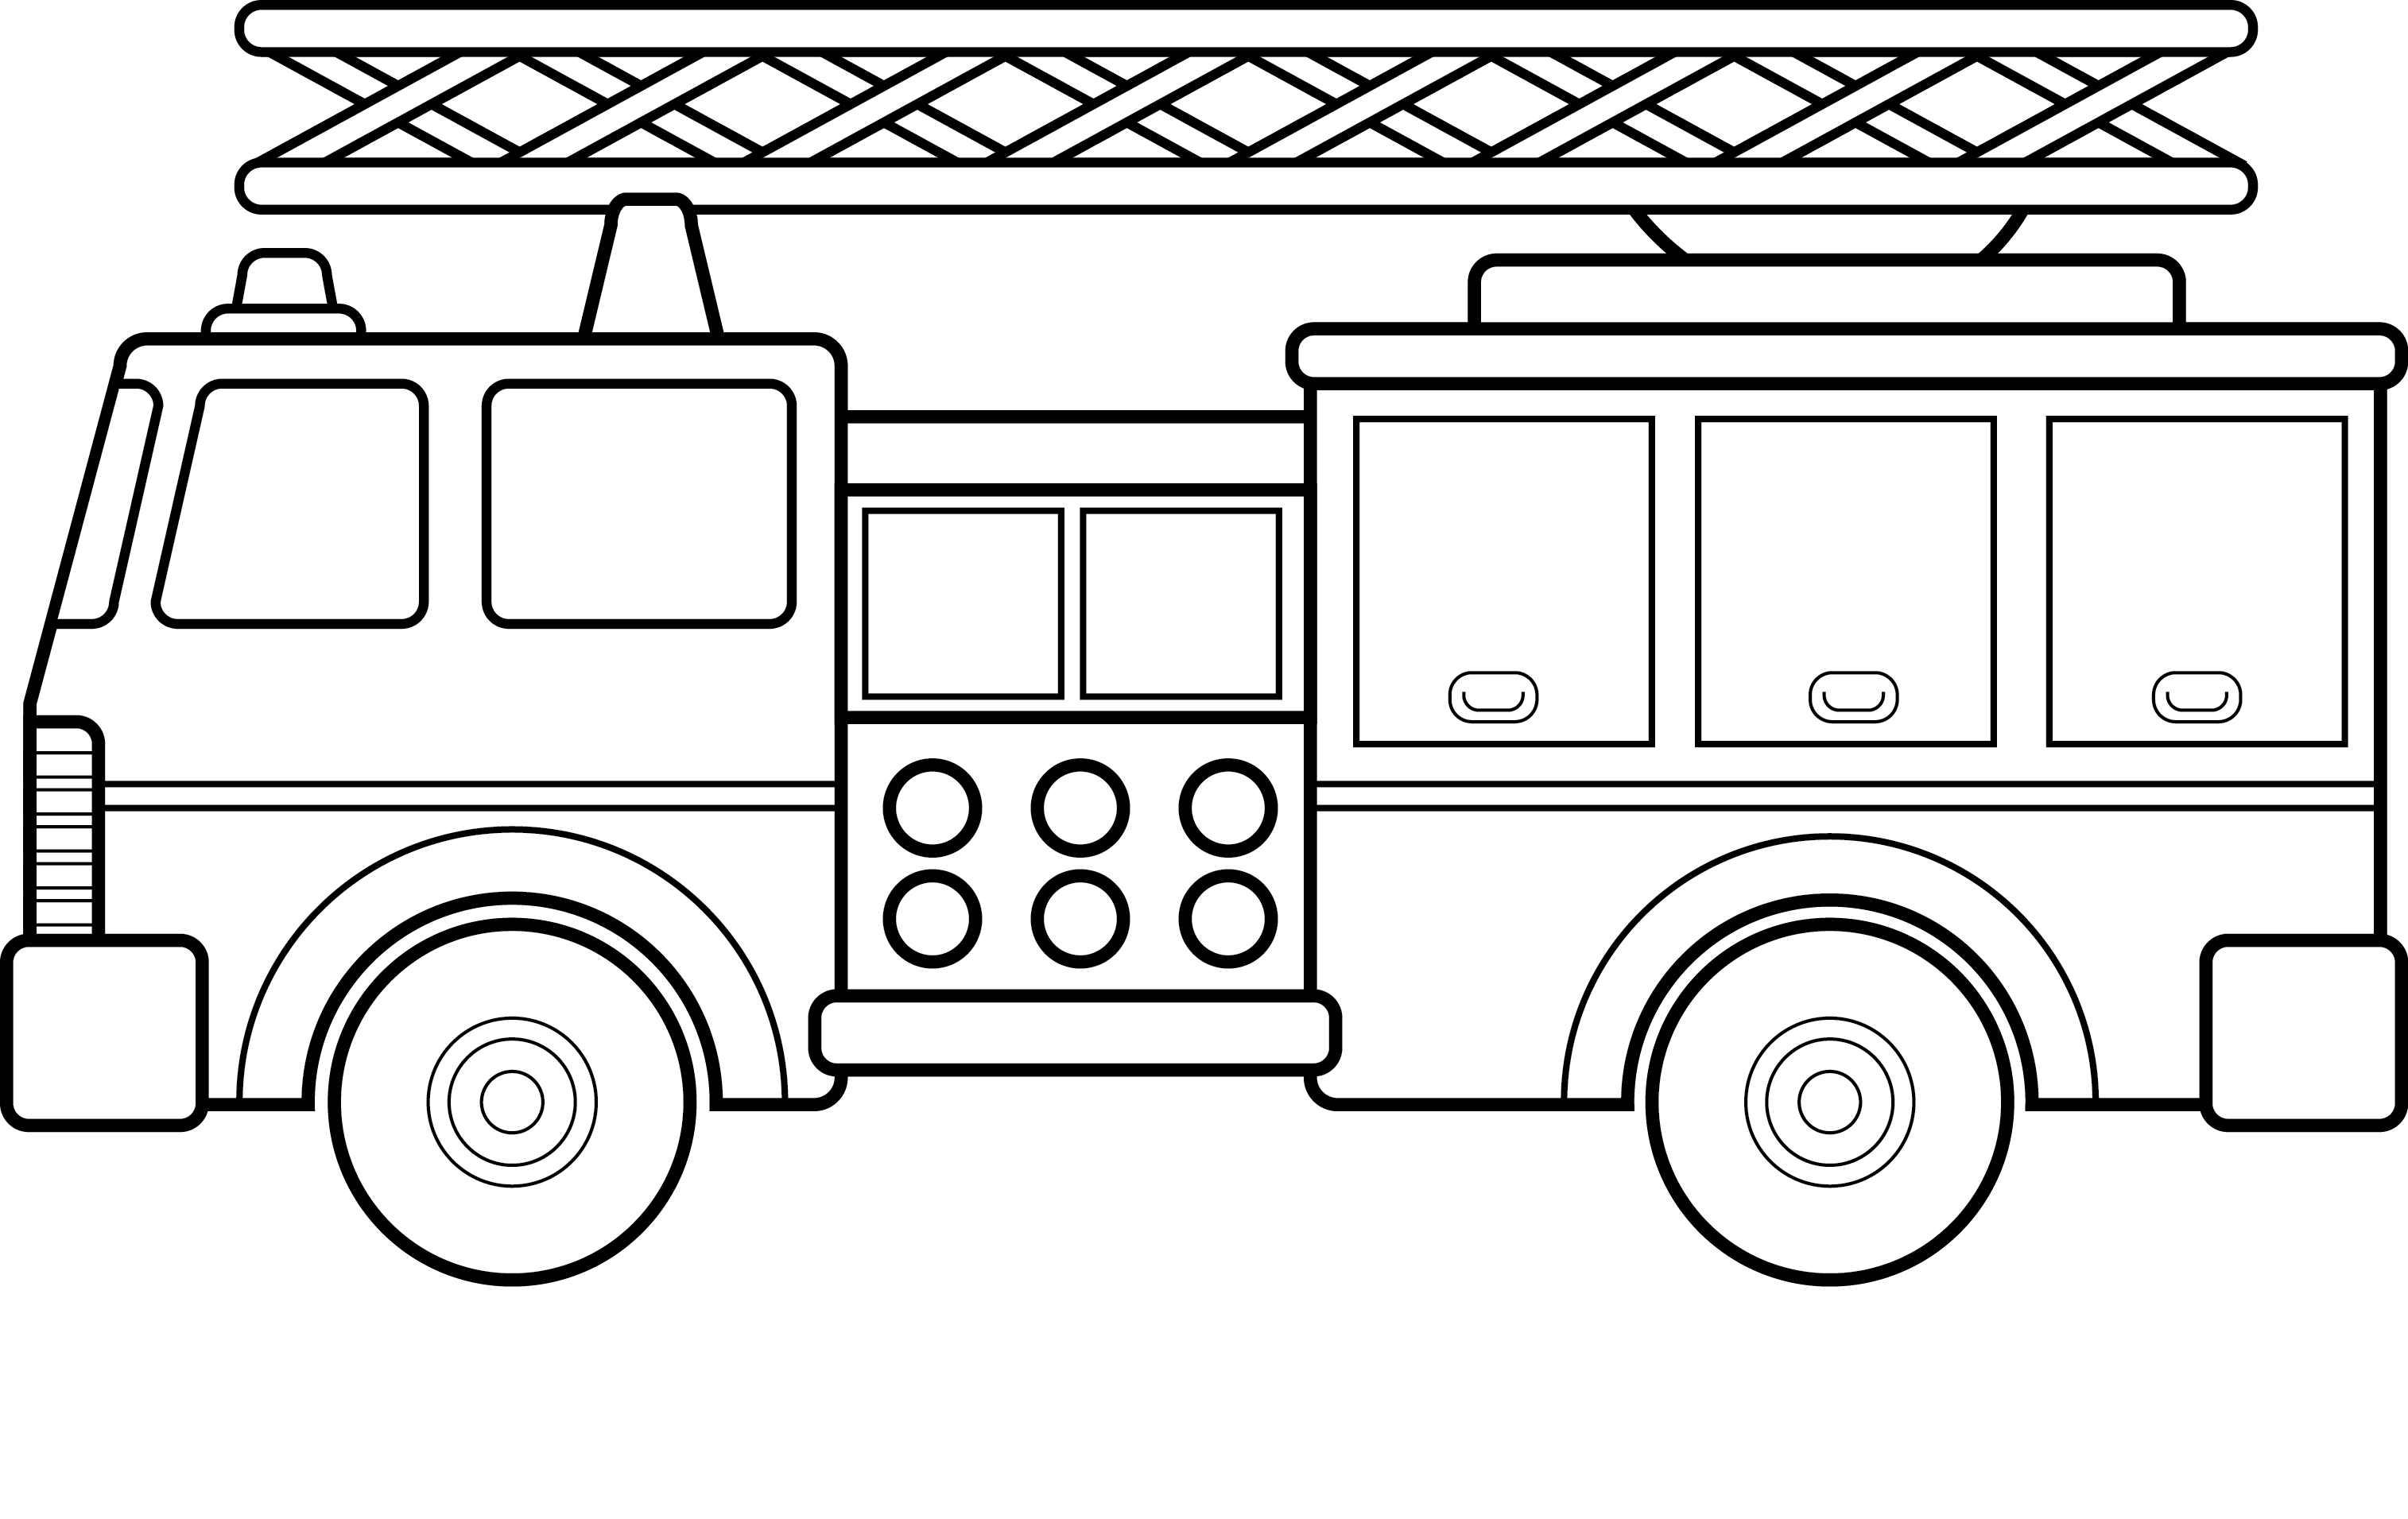 Coloring Pages Fire Truck Coloring Pages Printable free printable fire truck coloring pages for kids pictures